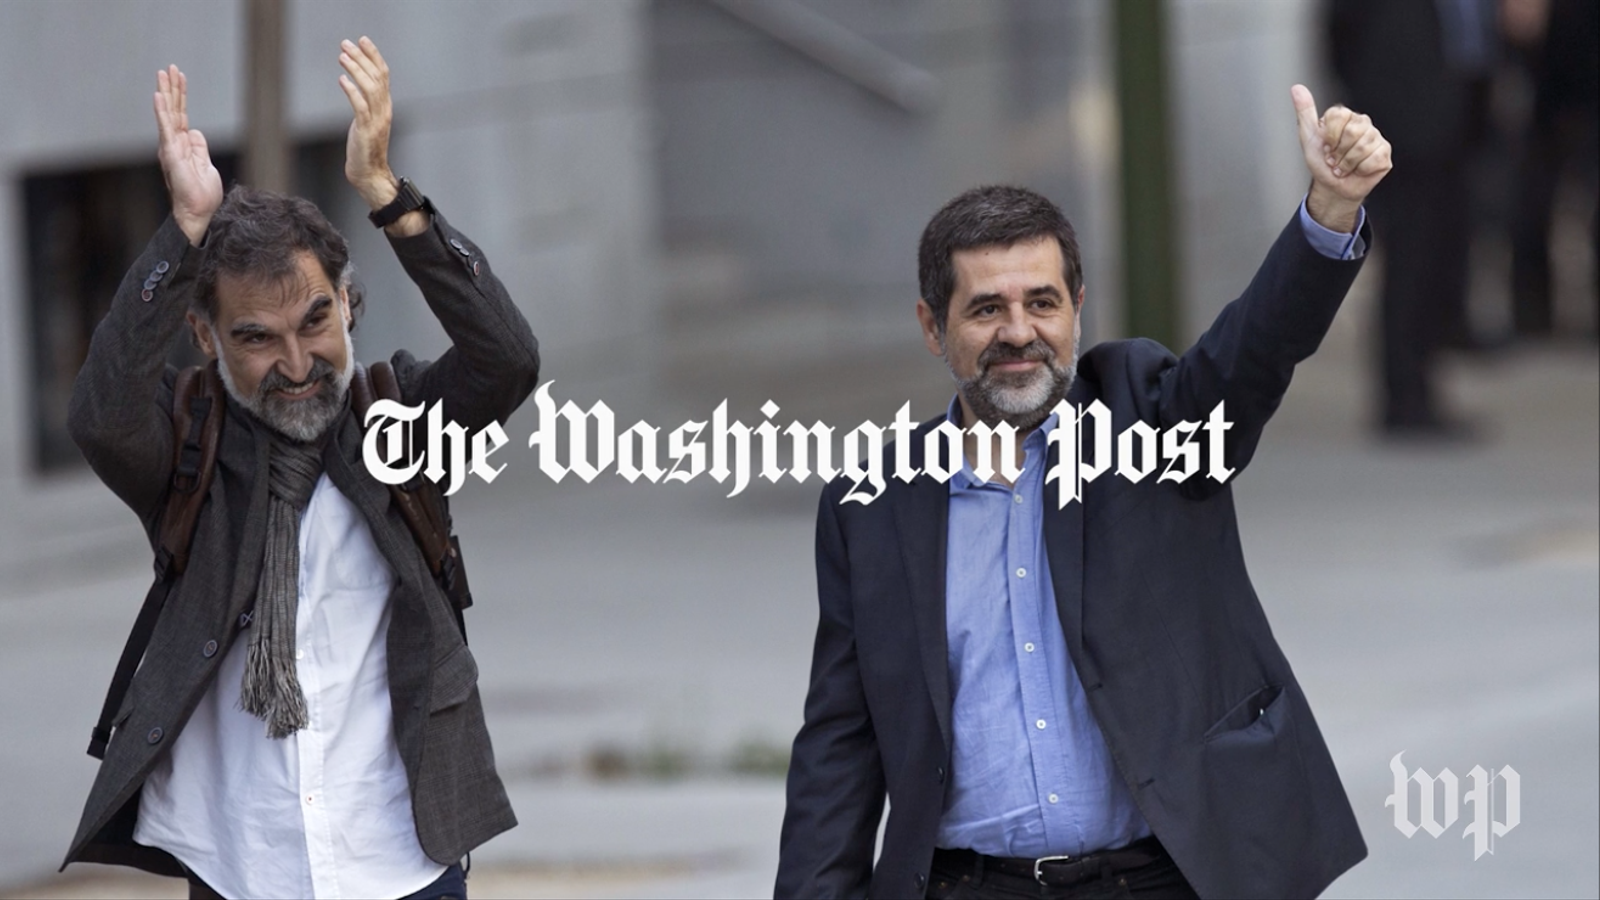 El 'Washington Post' publica un vídeo sobre l'empresonament dels Jordis